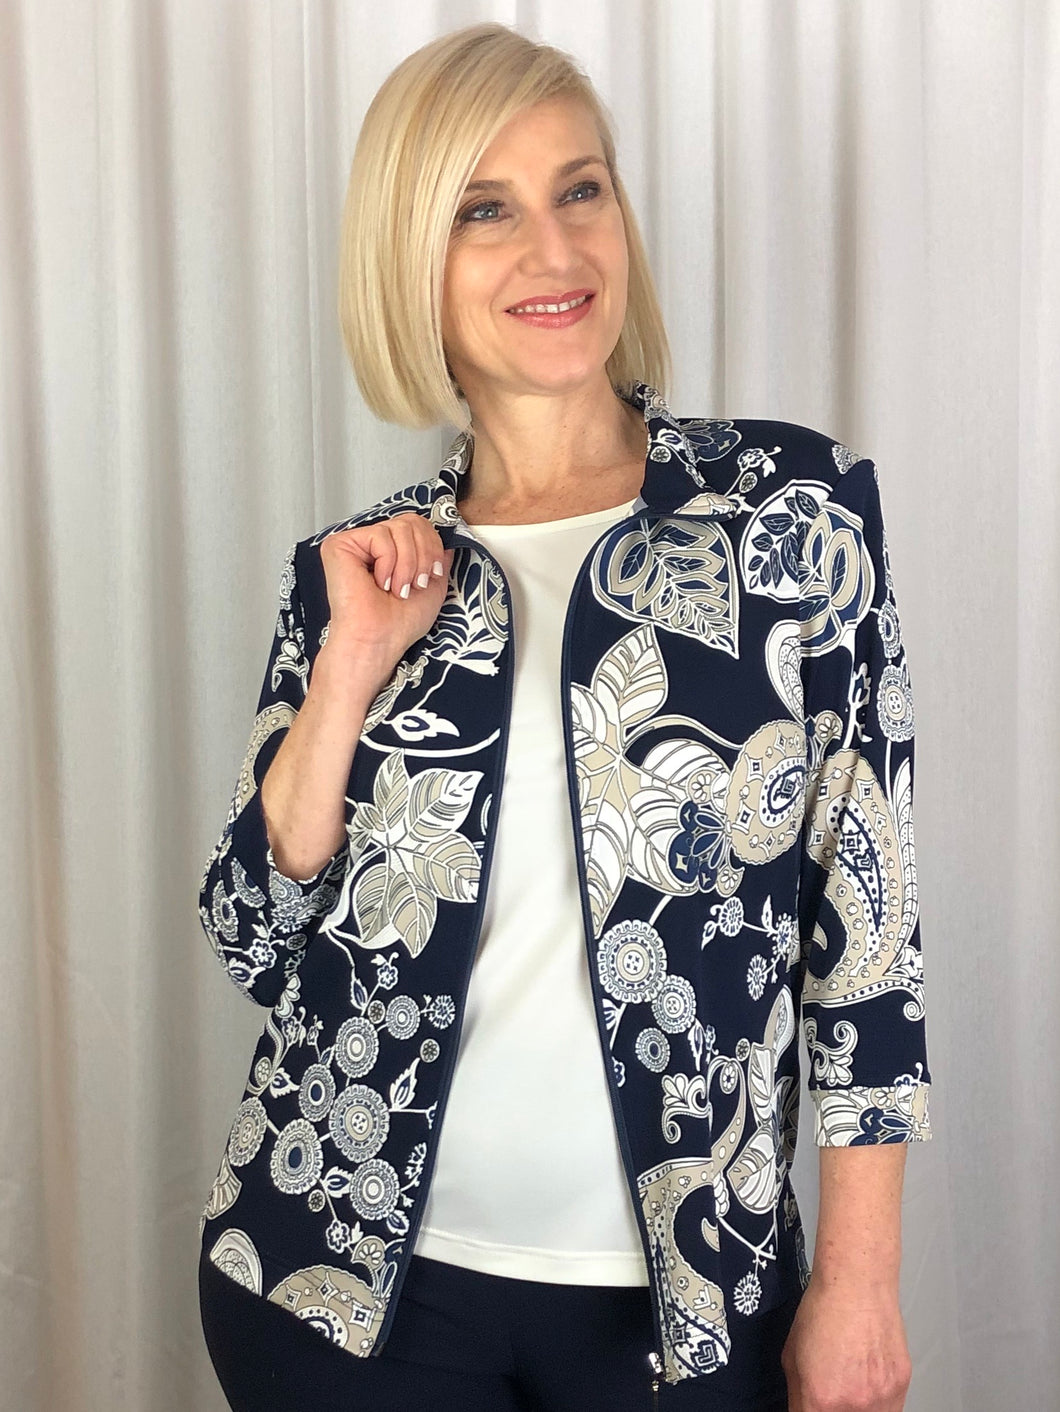 Our 3/4 Sleeve Cotswald Zip Jacket is a relaxed, easy to wear item that packs easily making it great for travelling. Featuring a paisley and floral design in neutral tones with highlights of puff paint on a navy background, the print stands out when teamed with one of our camis in a coordinating colour. Made in Australia from Poly/Spandex, it's fully washable and drip dries in no time.